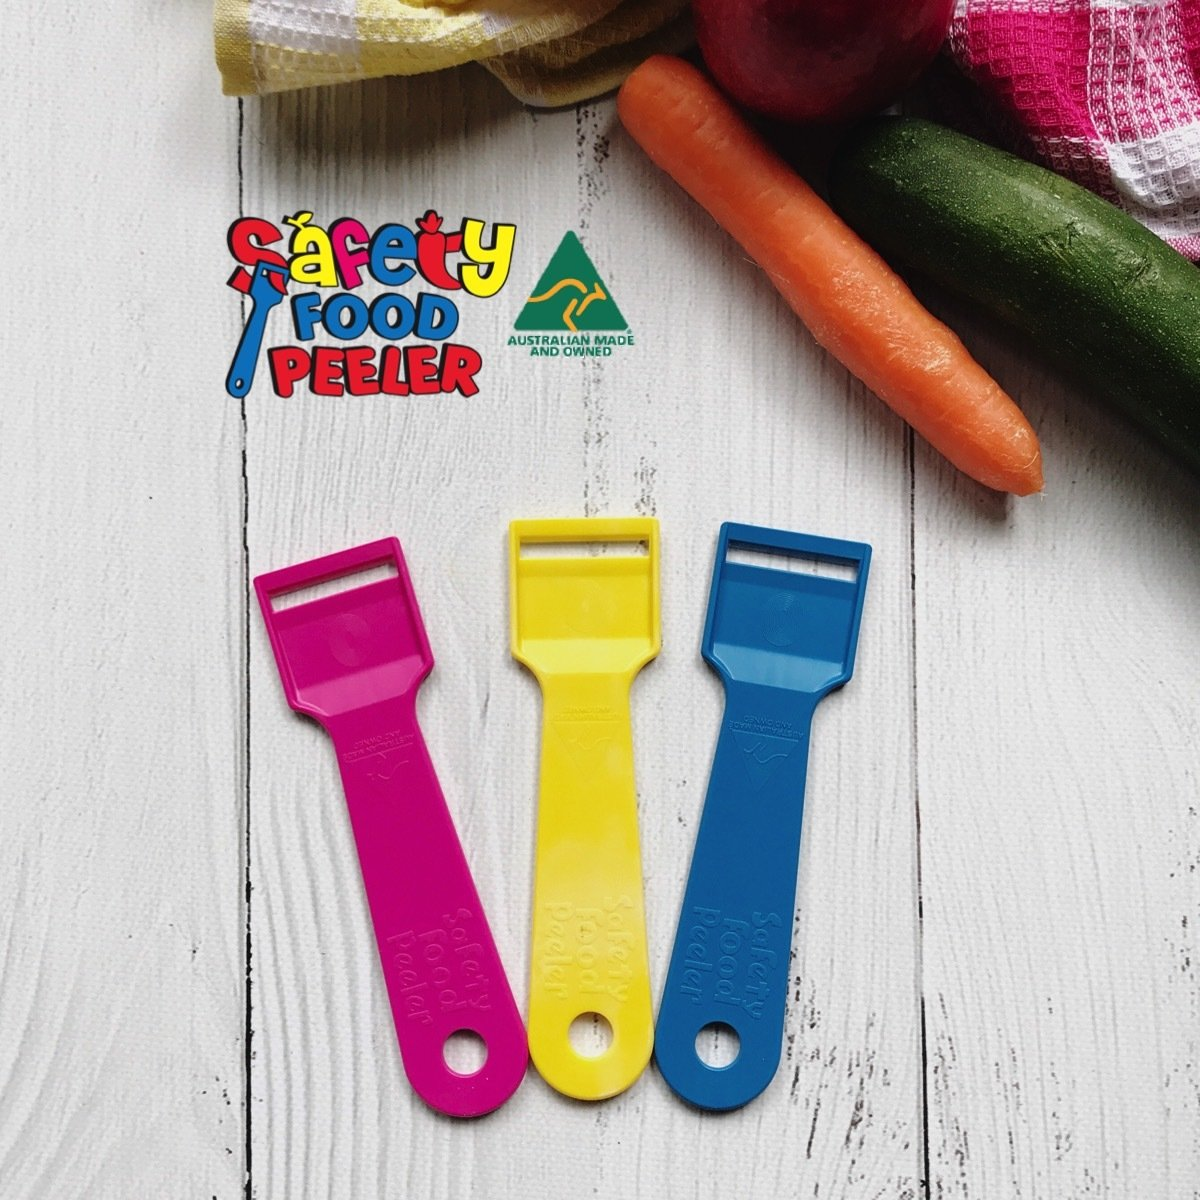 3 Pack - Safety Food Peeler 3 Pack SFP